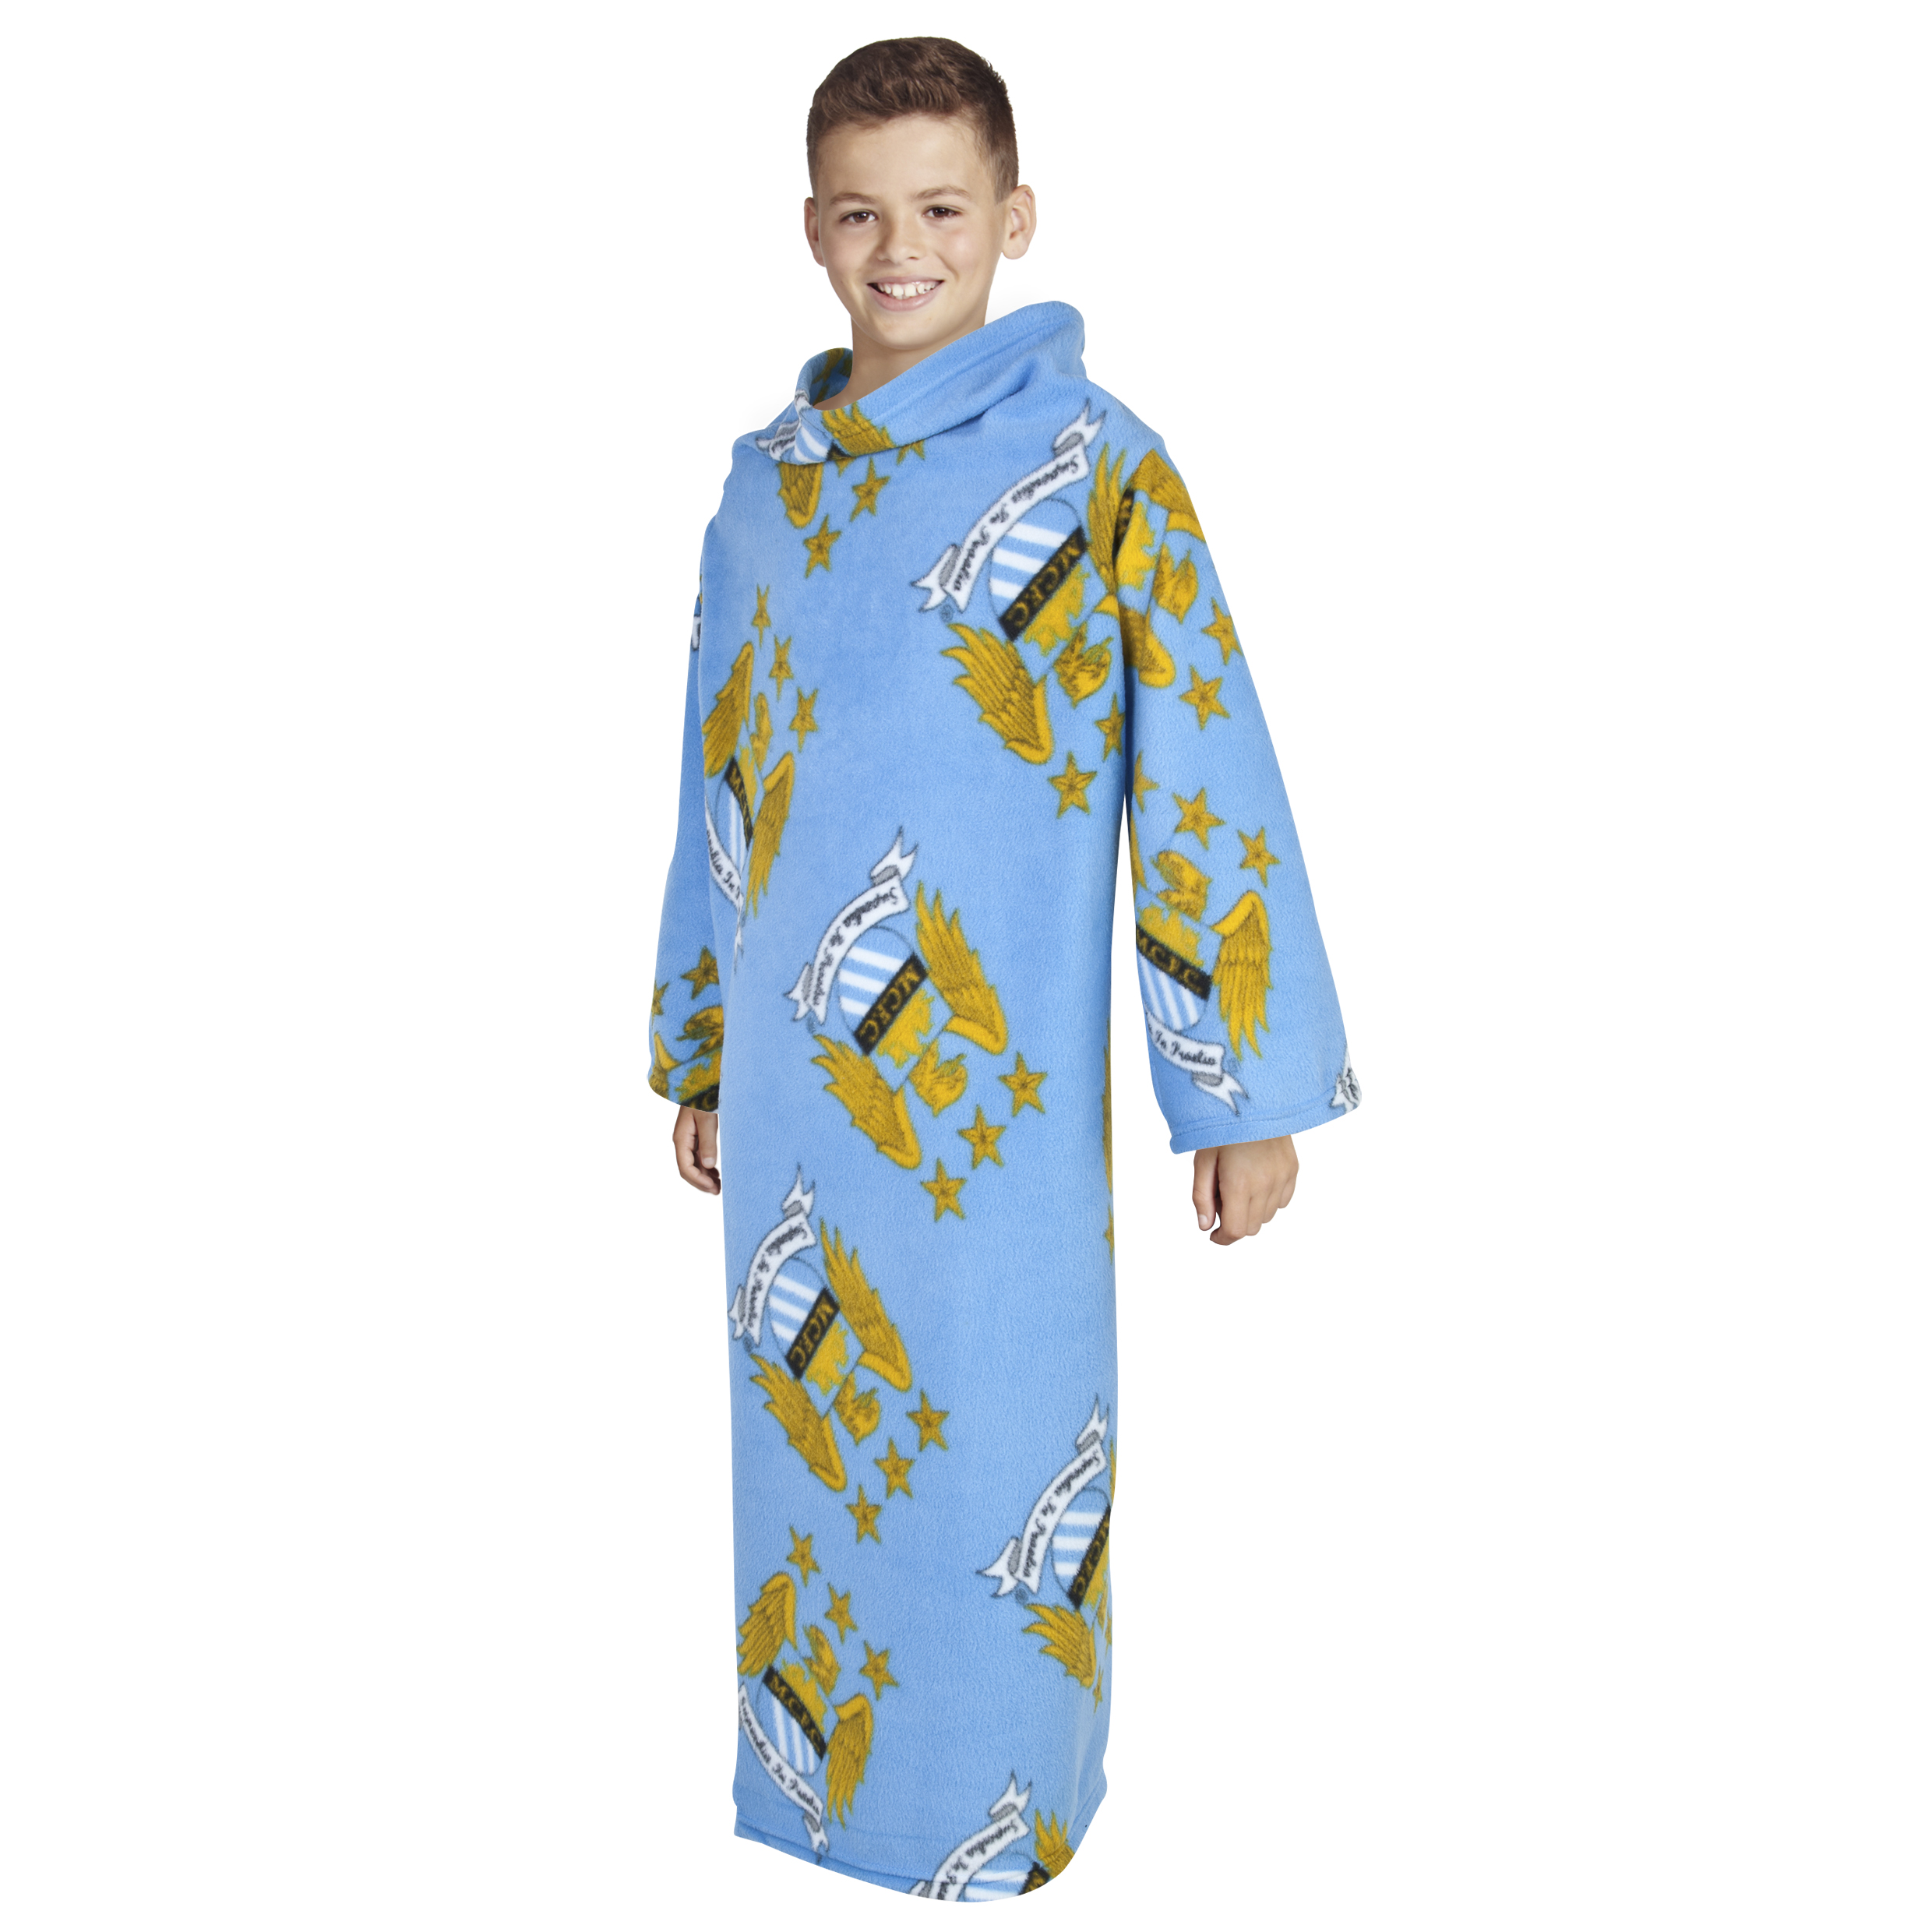 Manchester City Snuggle Fleece - Kids